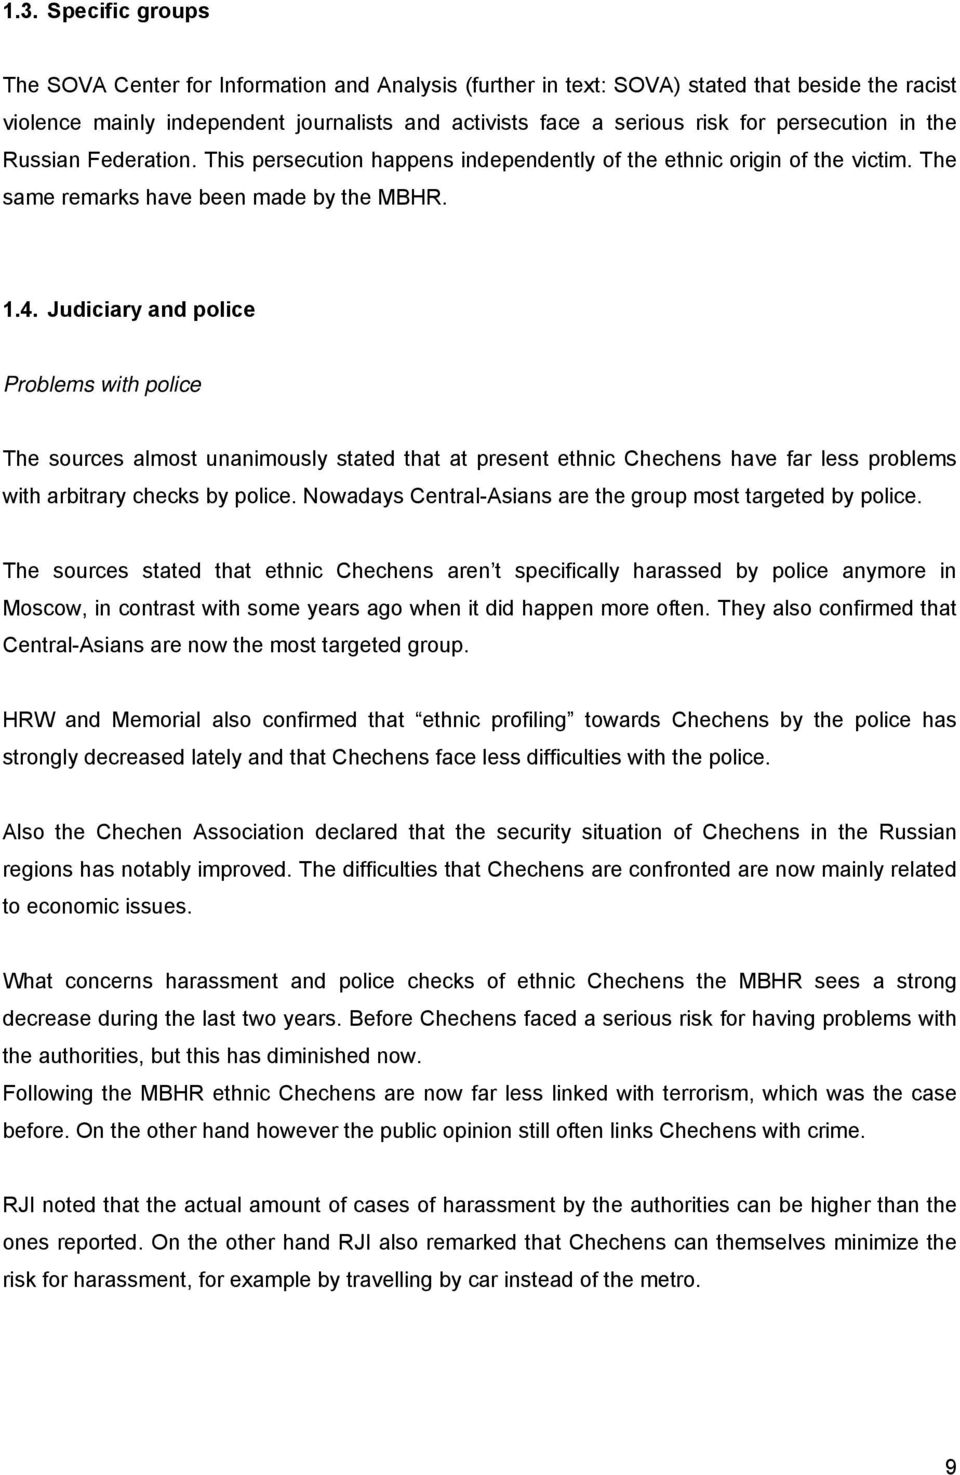 Judiciary and police Problems with police The sources almost unanimously stated that at present ethnic Chechens have far less problems with arbitrary checks by police.